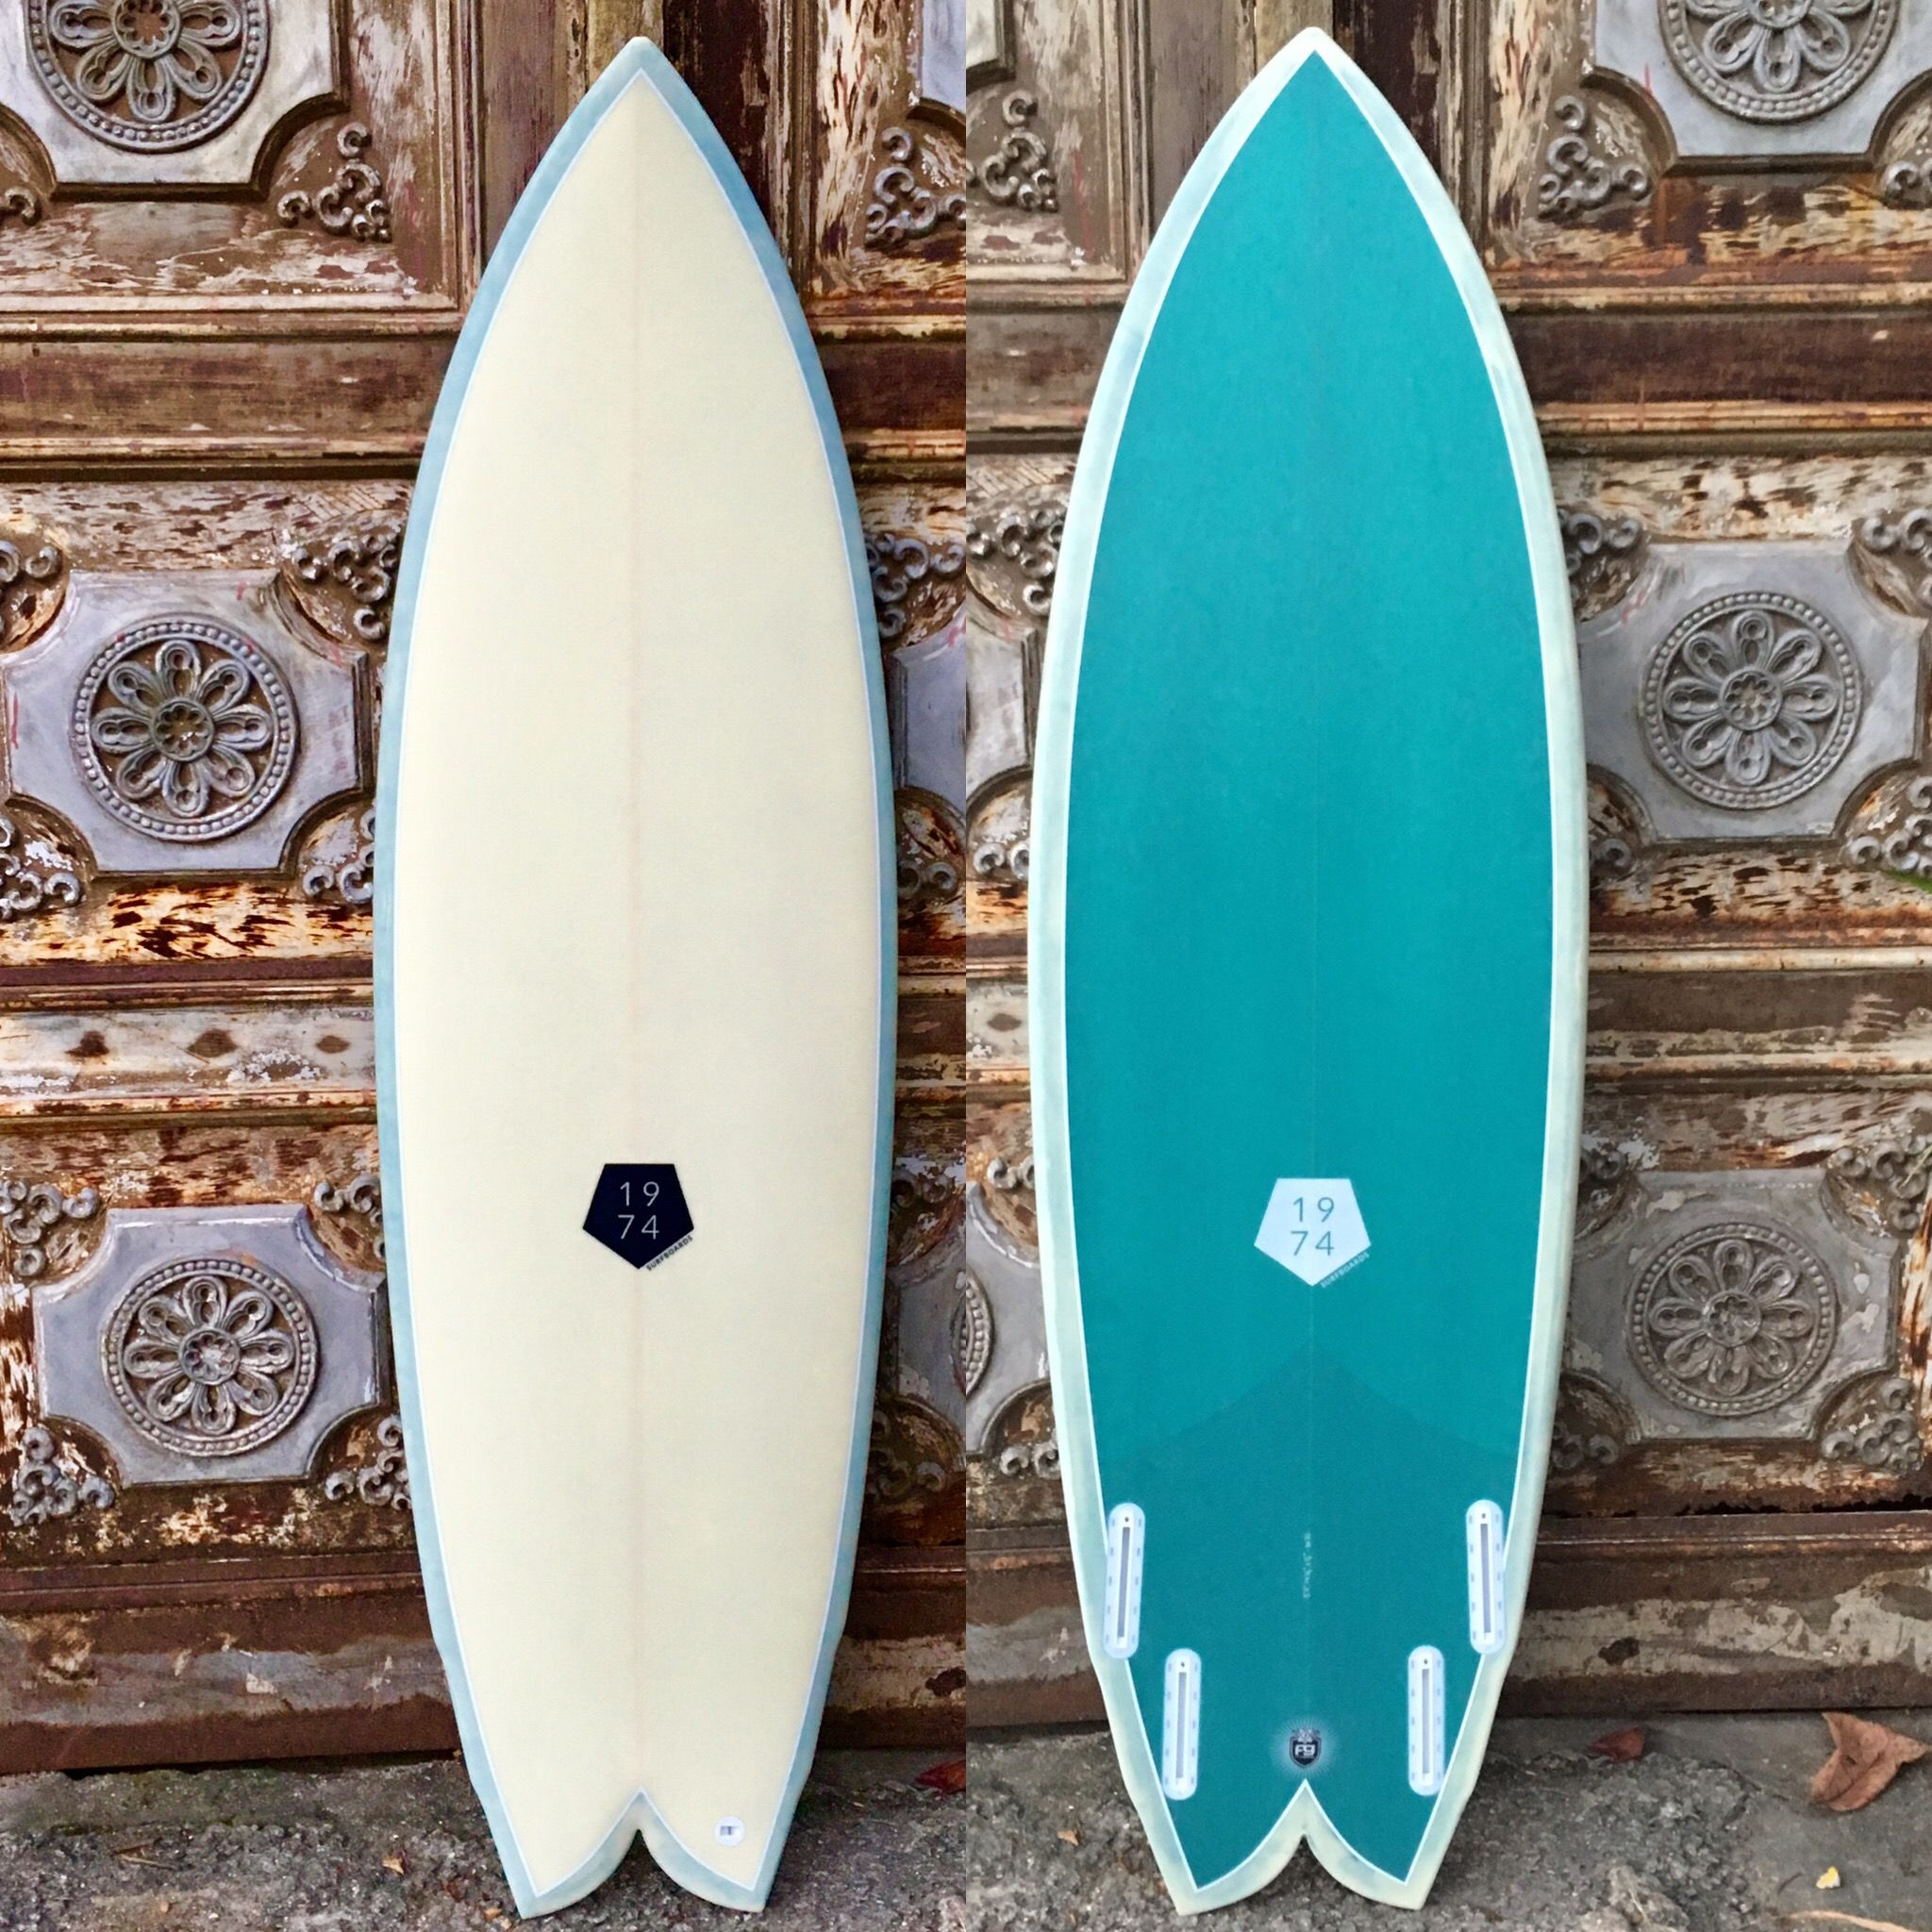 Surfboards Available In California, Brasil And Portugal